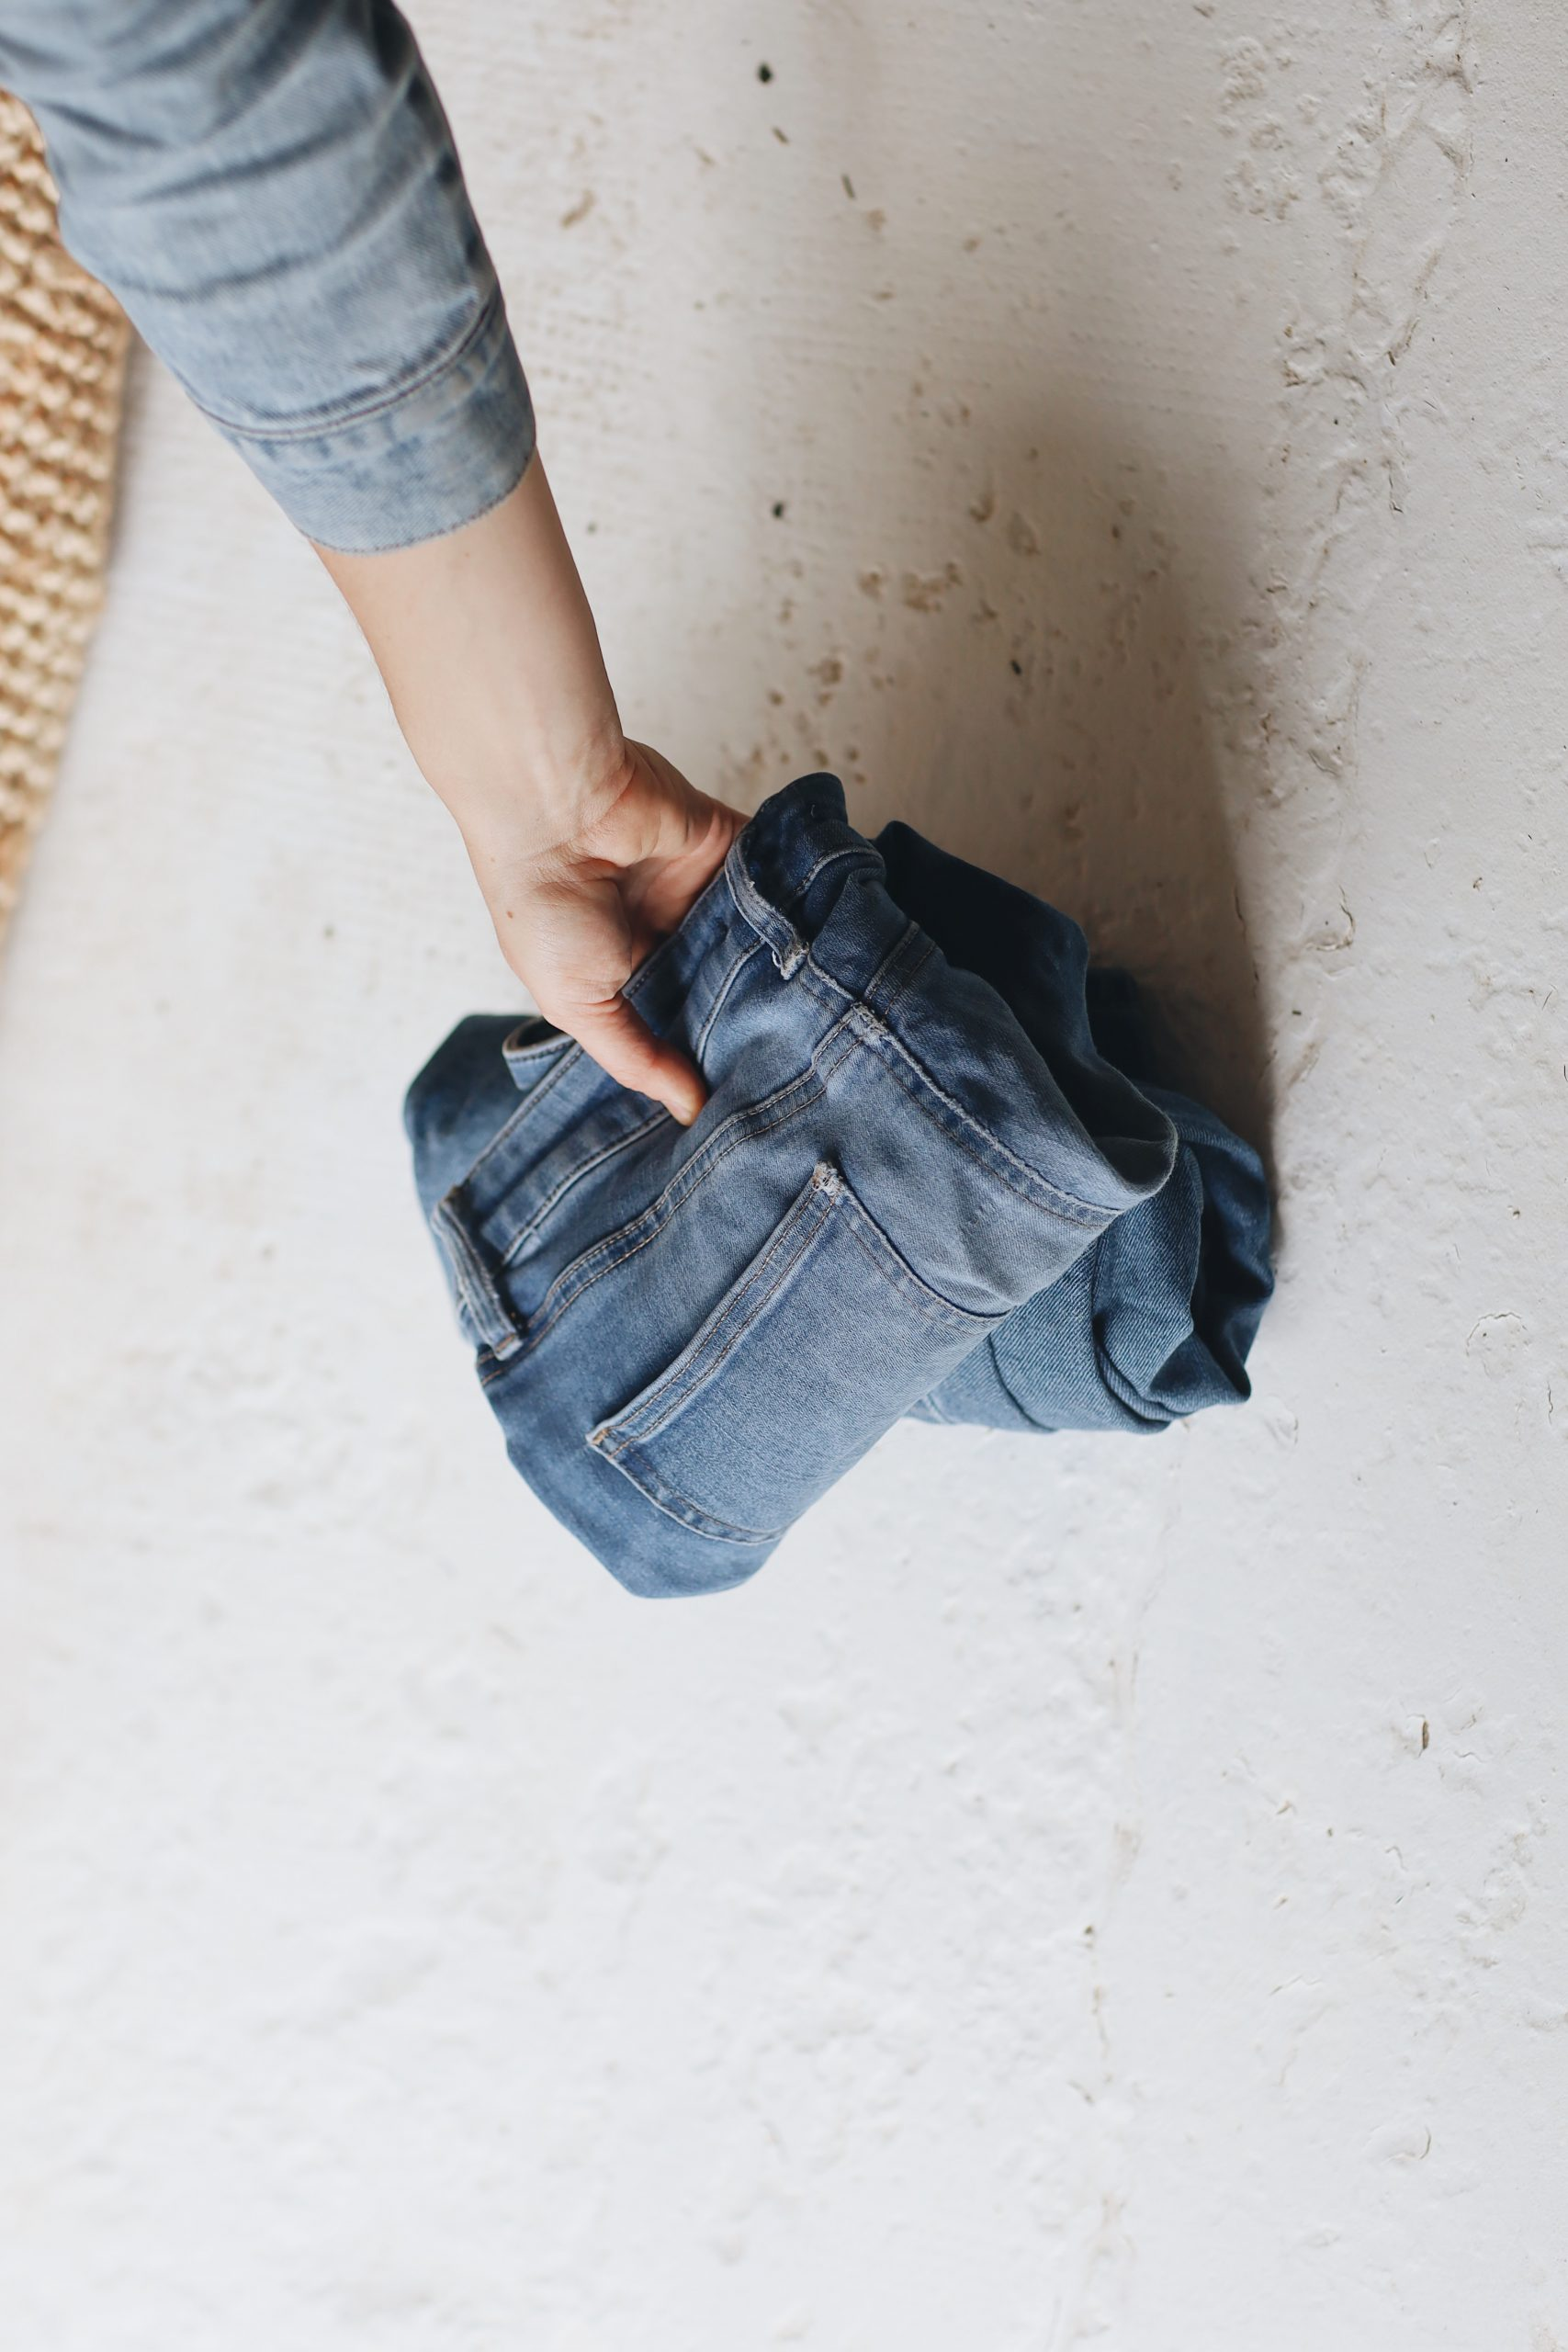 How To Fold Jeans: A Step-By-Step Guide